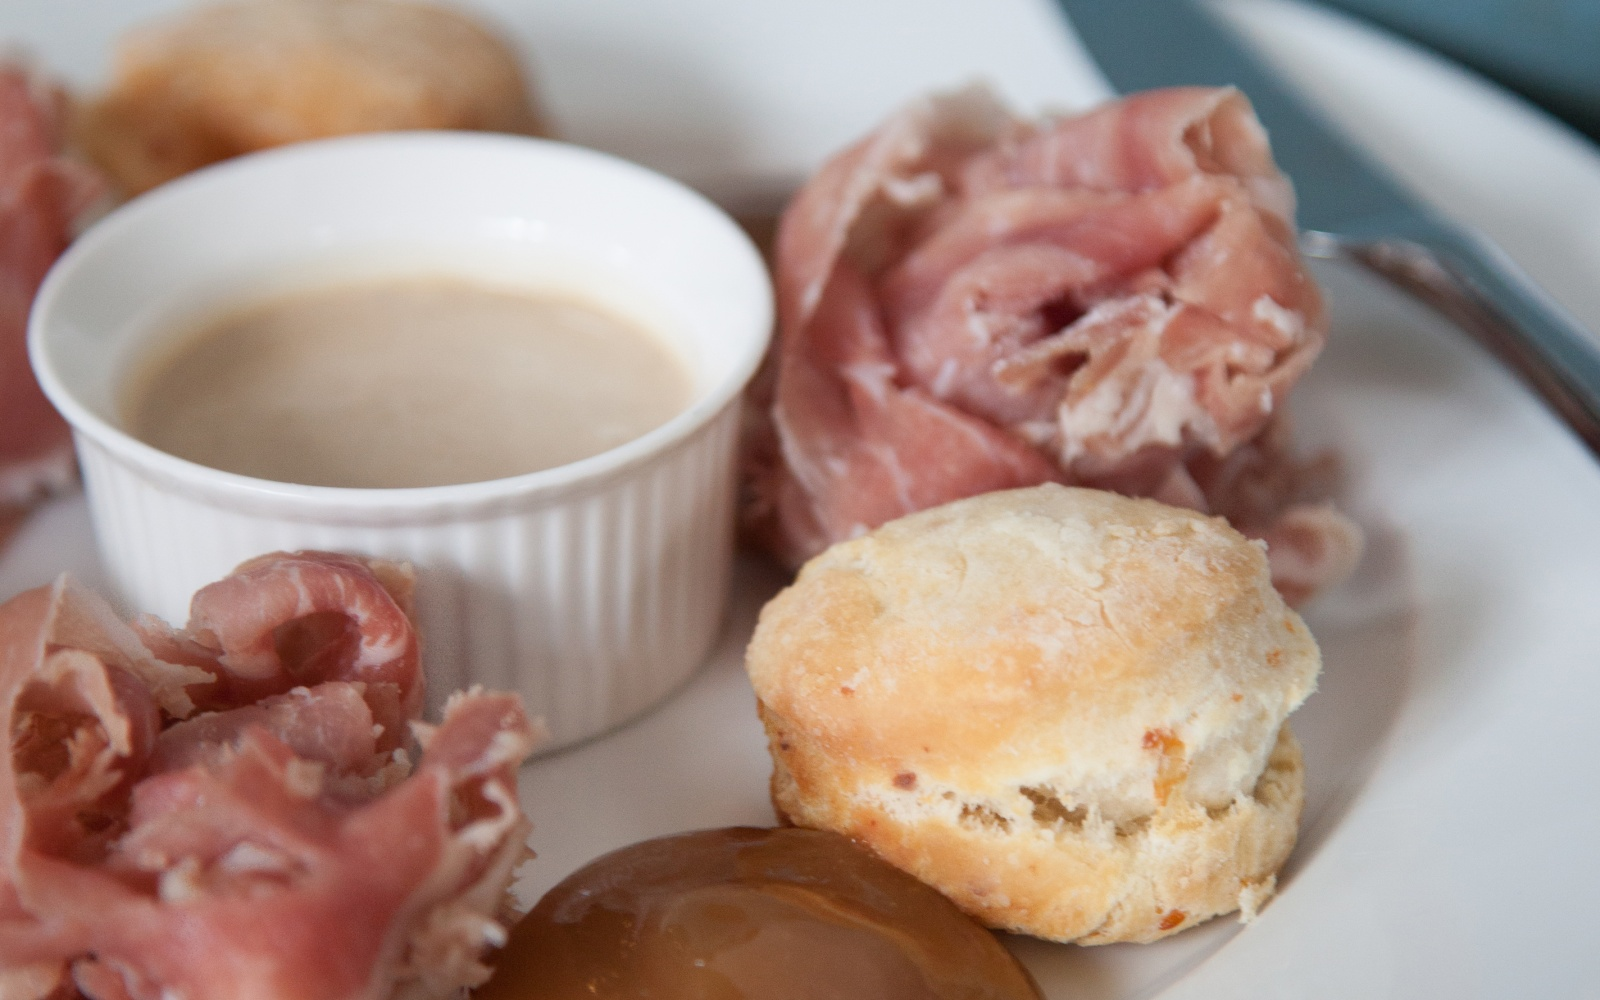 Rare Whiskey Jam & Ham Biscuits (and more whiskey) at The 404 Kitchen in Nashville